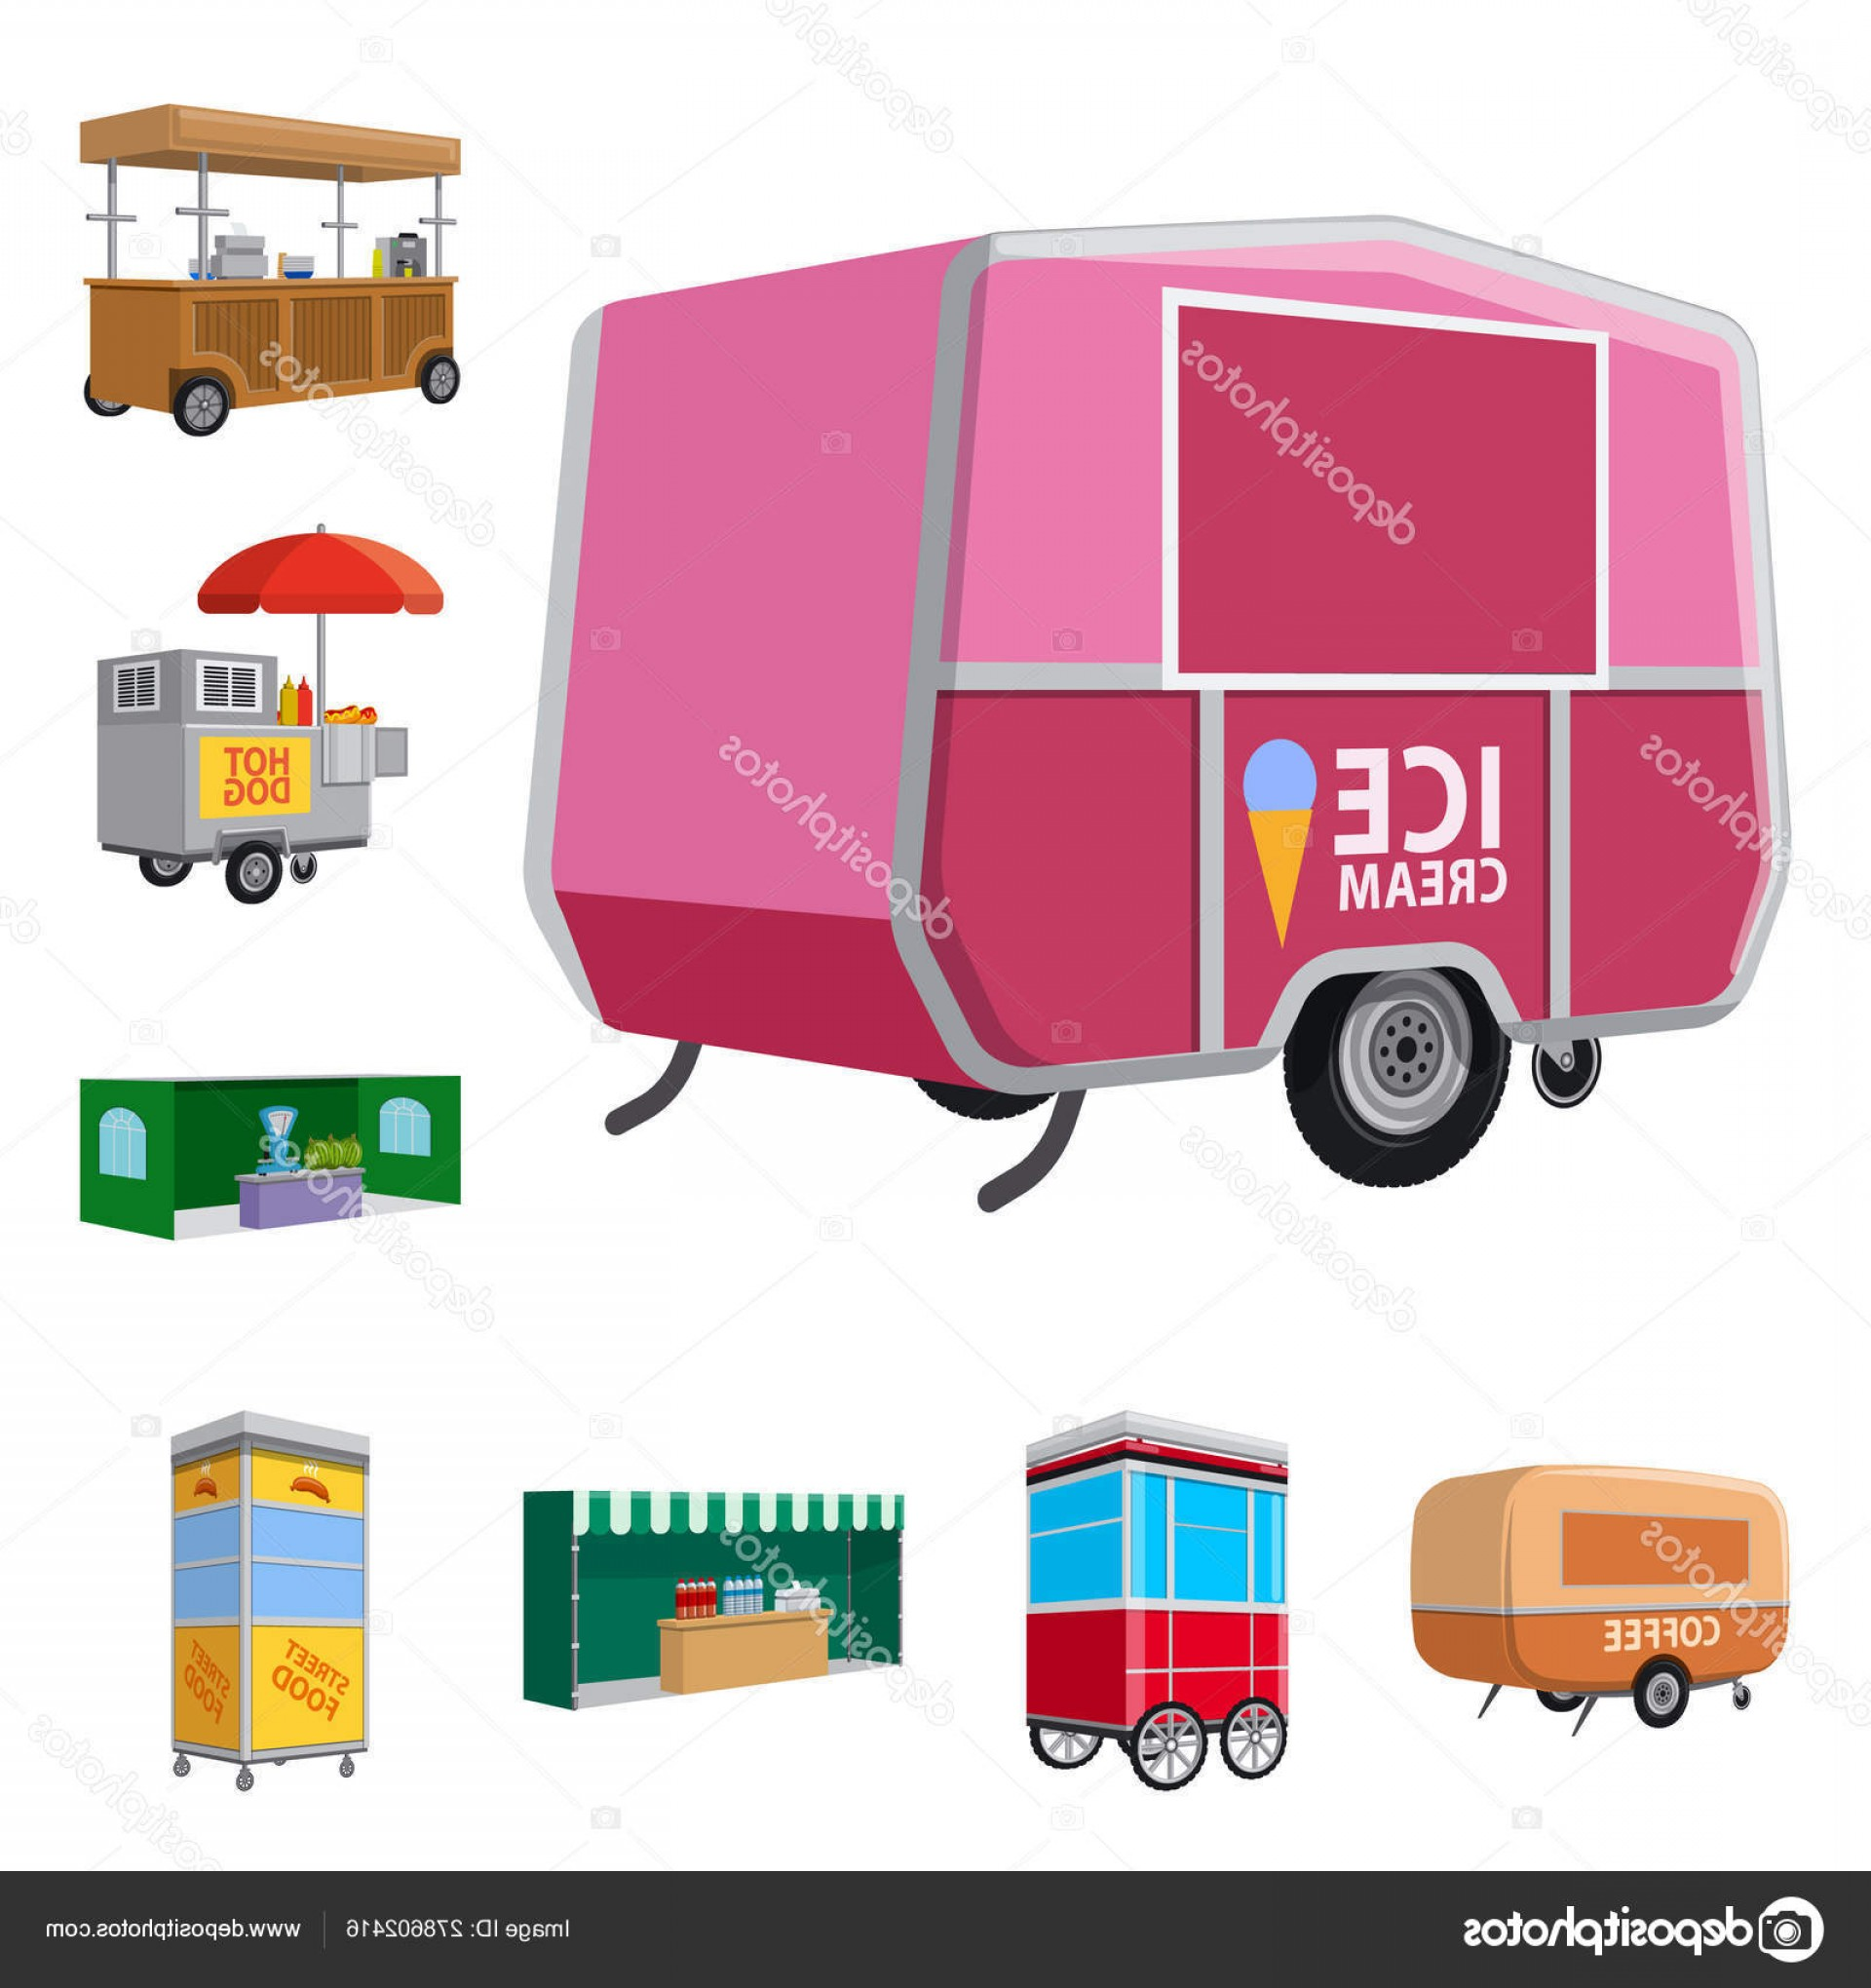 Commercial Booth Vector: Stock Illustration Vector Illustration Of Booth And